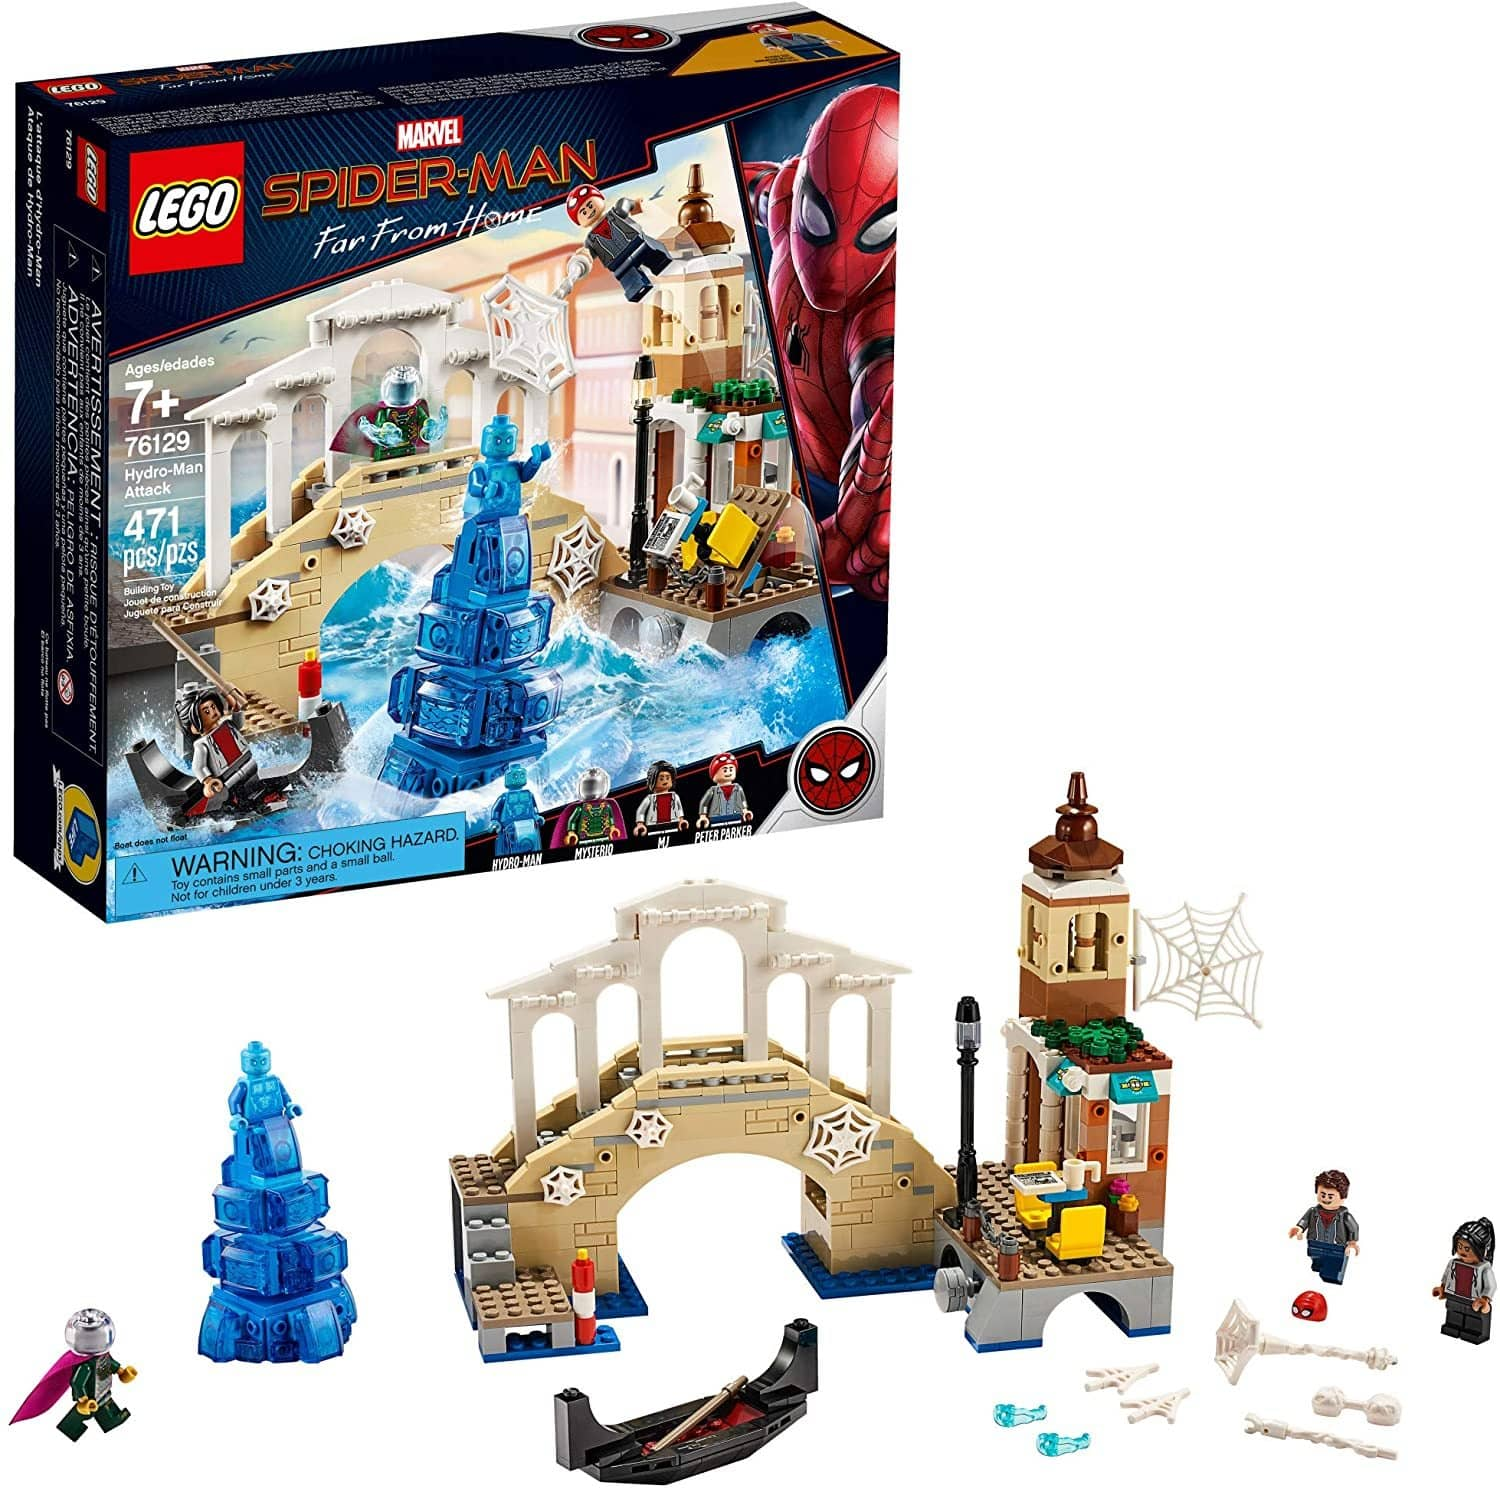 LEGO 76129: Spider-Man: Far From Home: Hydro-Man Attack (471 Pieces)-Kidding Around NYC